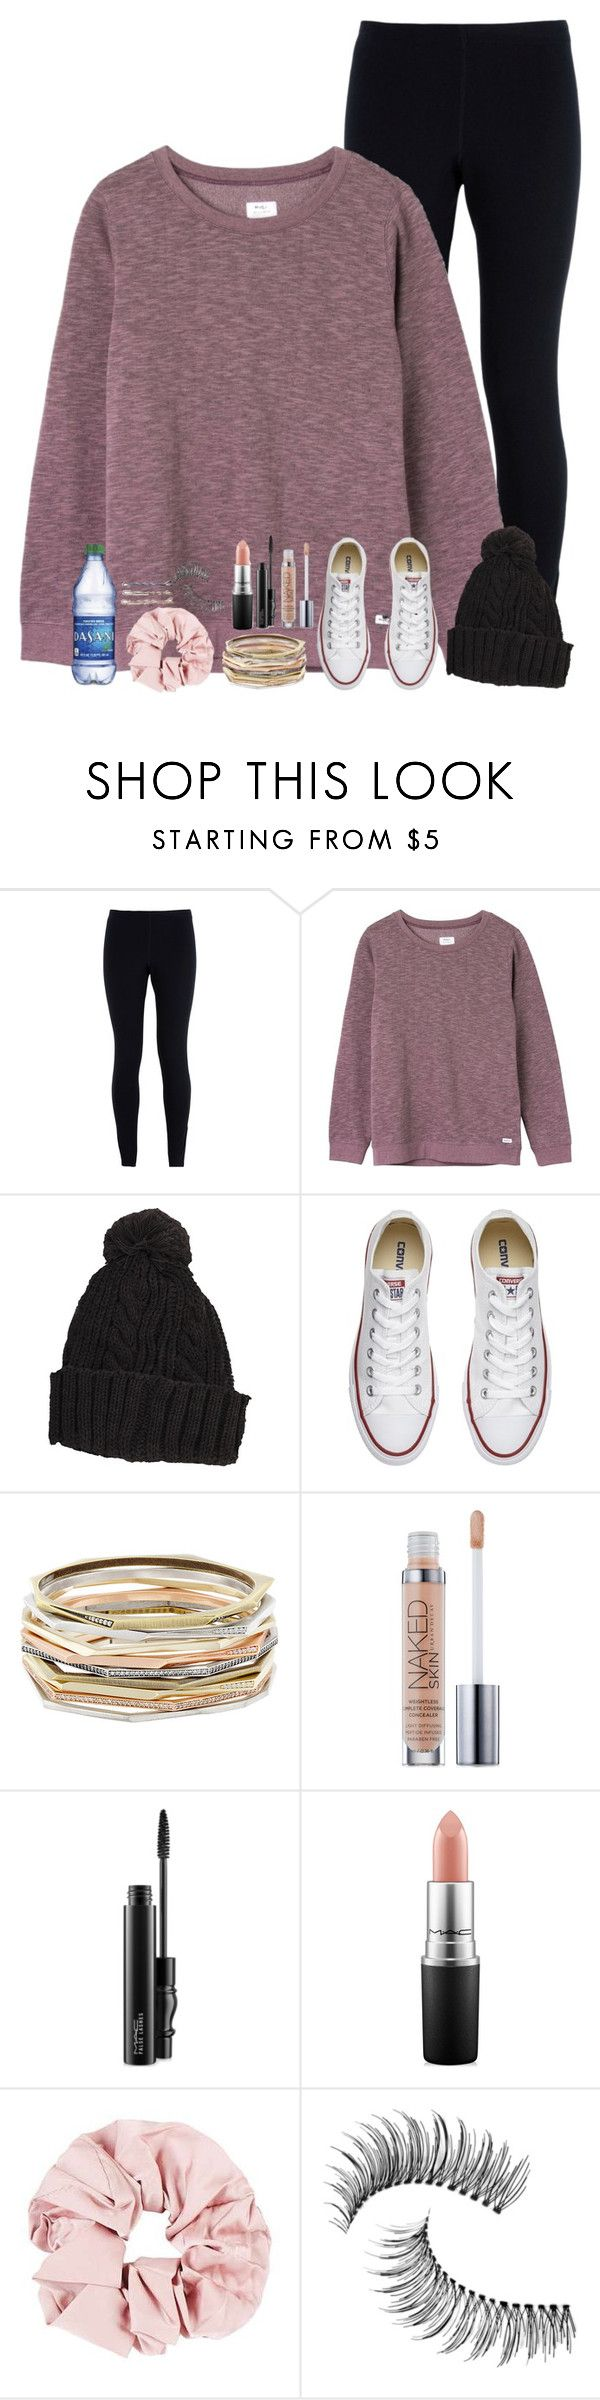 """""""get to see my babe today"""" by rachiepoo13 ❤ liked on Polyvore featuring NIKE, RVCA, Converse, Kendra Scott, Urban Decay, MAC Cosmetics, Trish McEvoy and Guide London"""